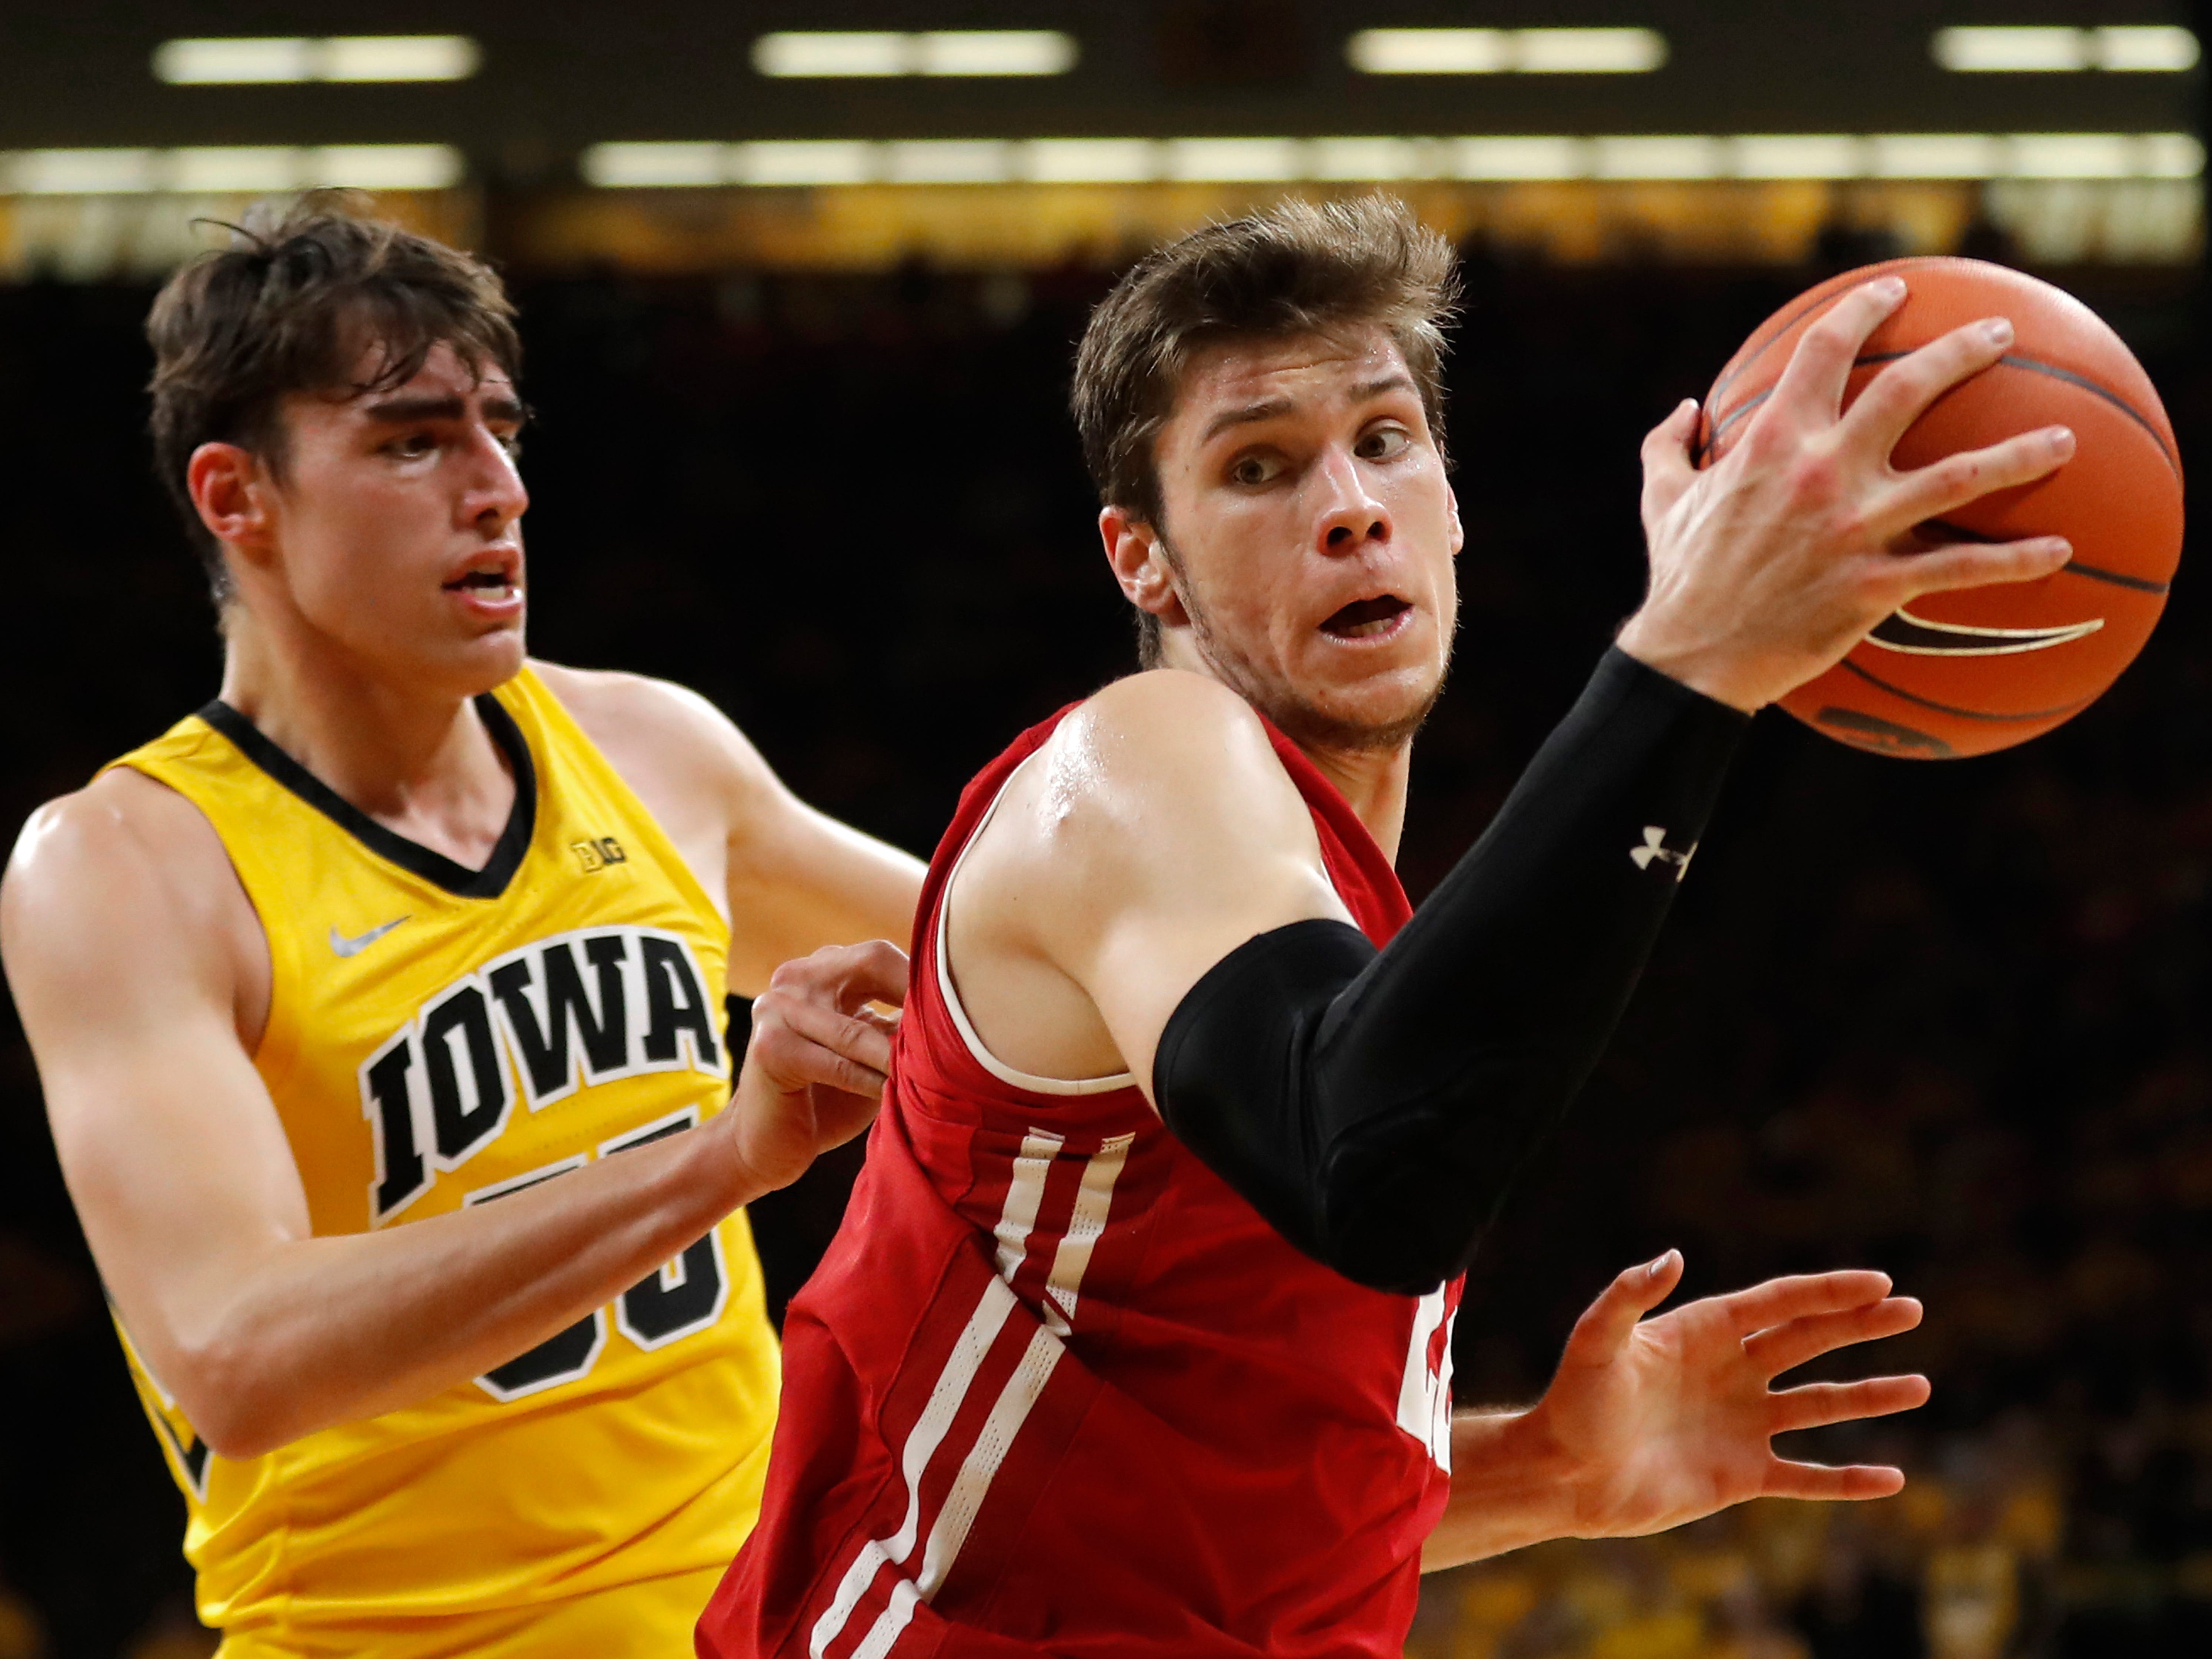 Wisconsin forward Ethan Happ drives past Iowa forward Luka Garza, left, during the first half of an NCAA college basketball game Friday, Nov. 30, 2018, in Iowa City, Iowa.(AP Photo/Charlie Neibergall)